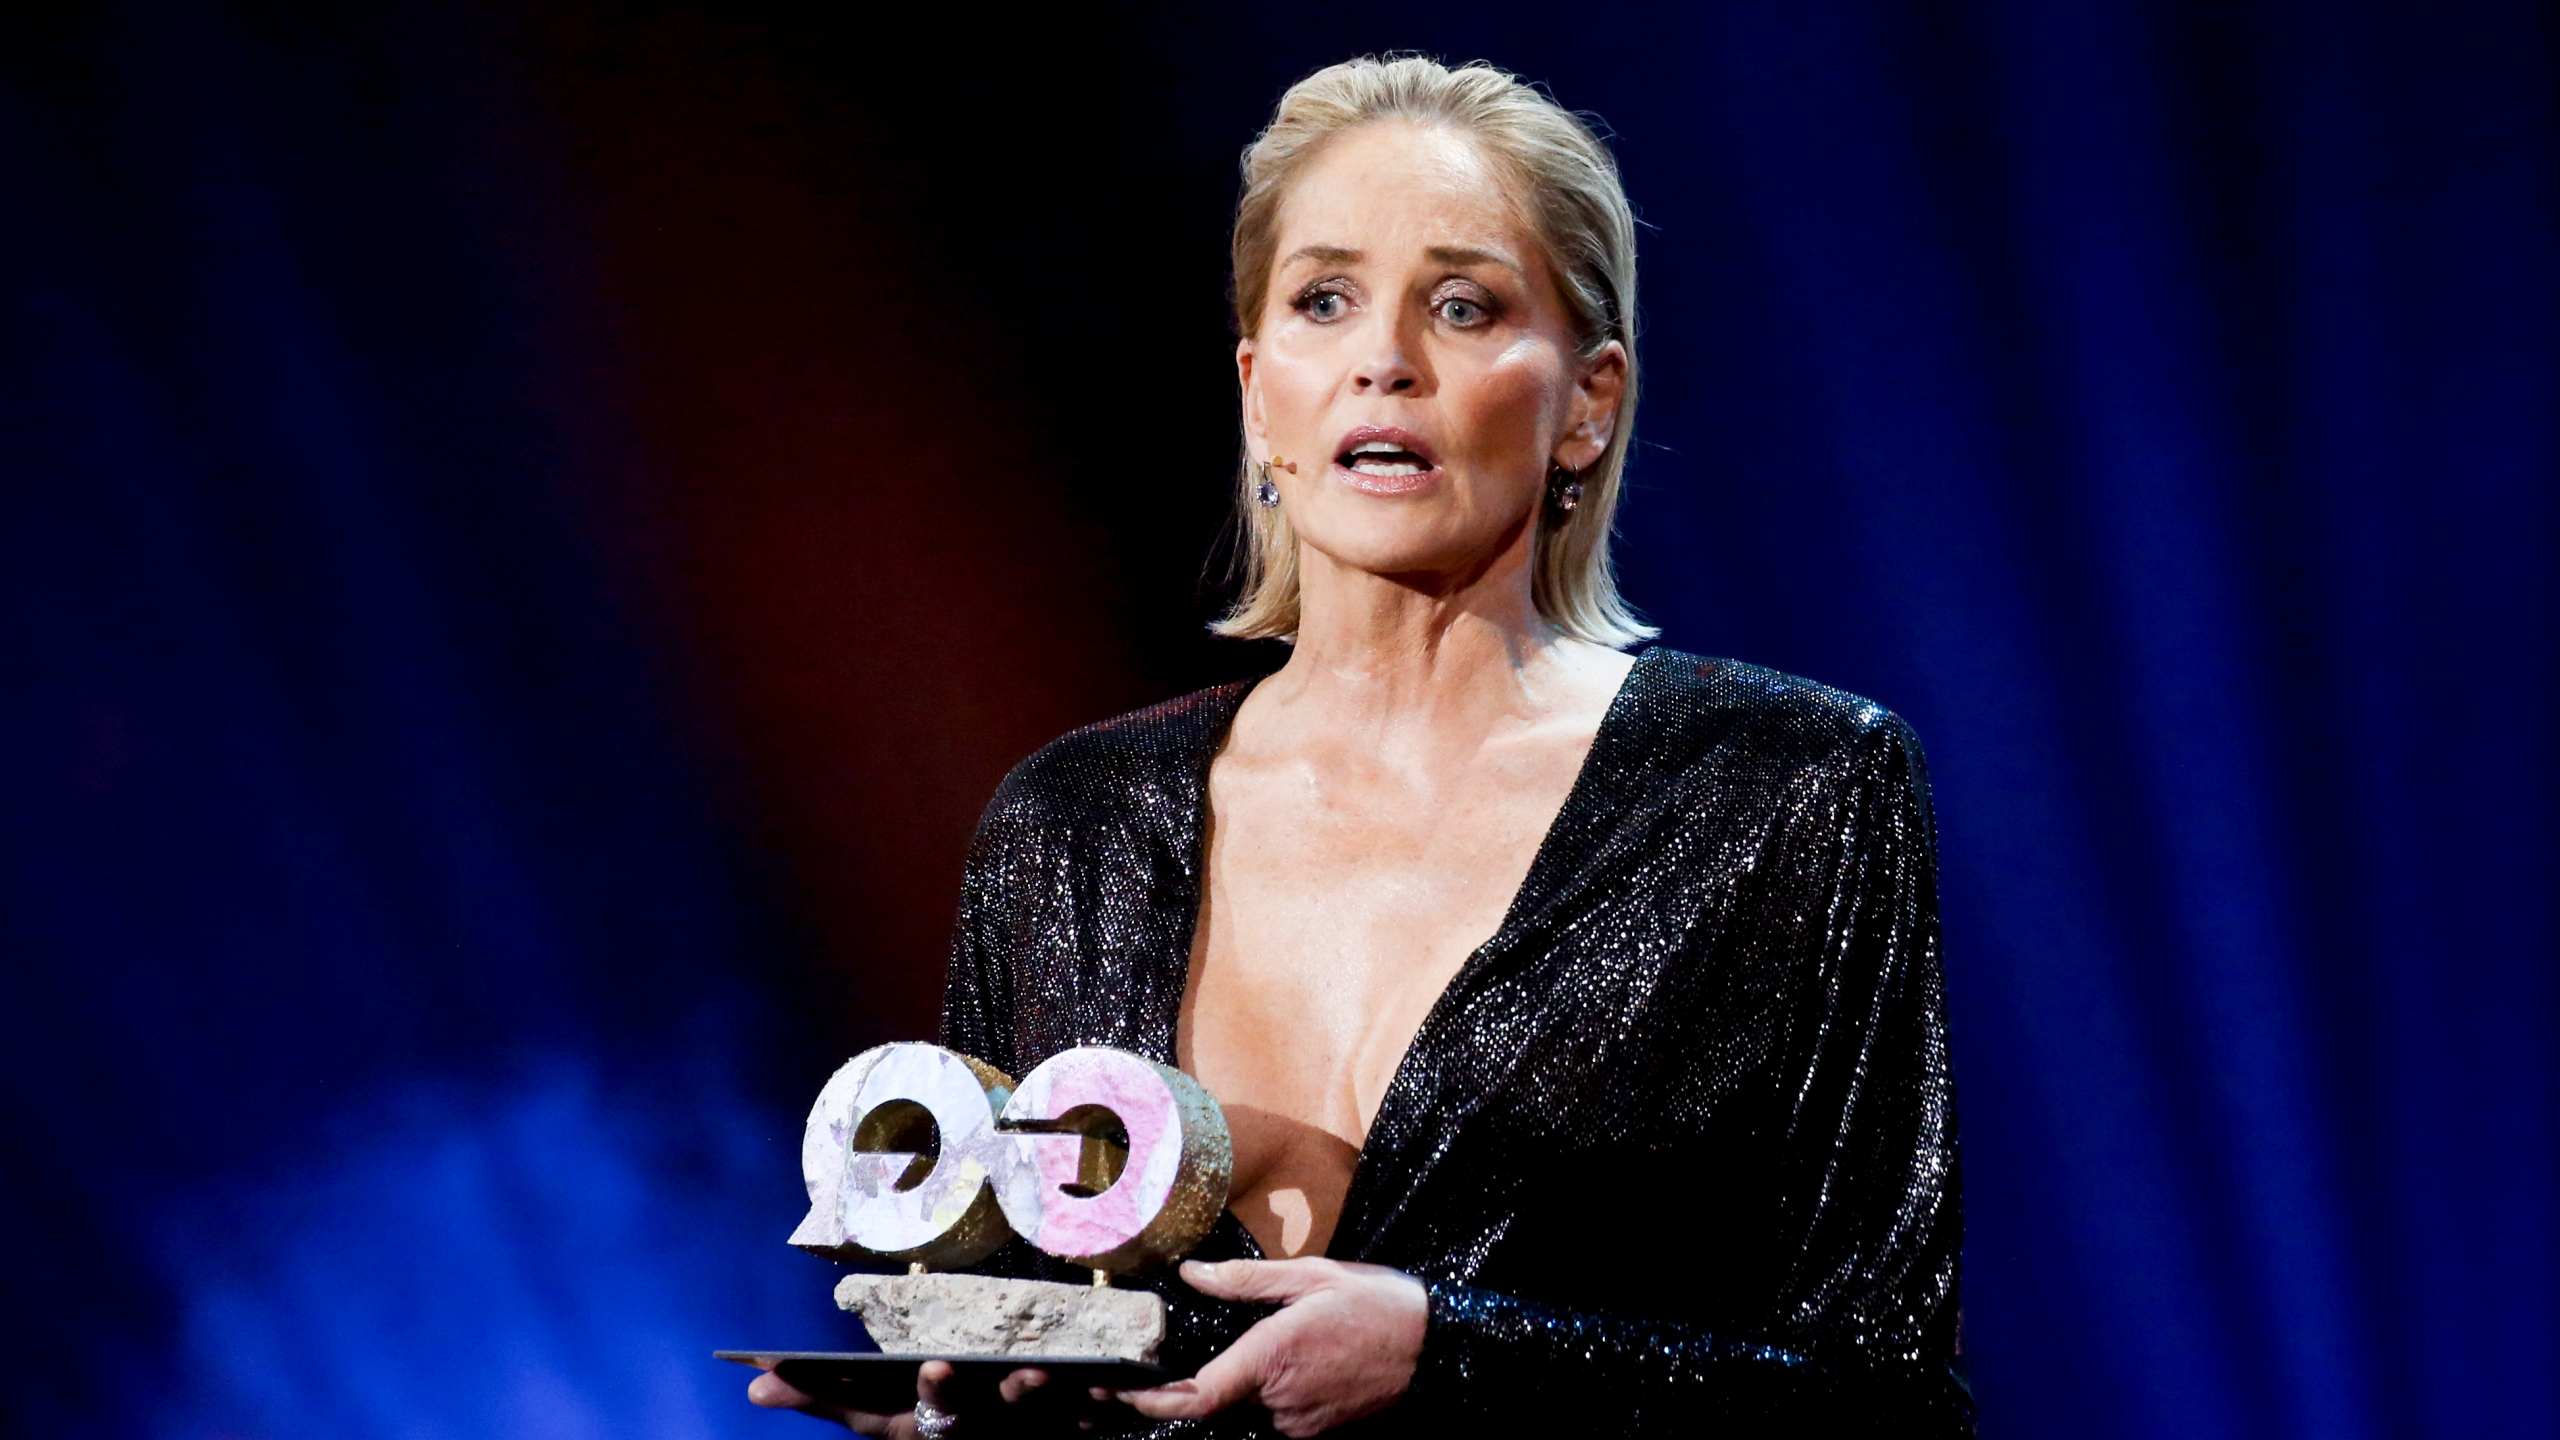 Sharon Stone is seen on stage during the GQ Men of the Year Award show at Komische Oper on Nov. 7, 2019 in Berlin, Germany. (Isa Foltin/Getty Images for GQ Germany)